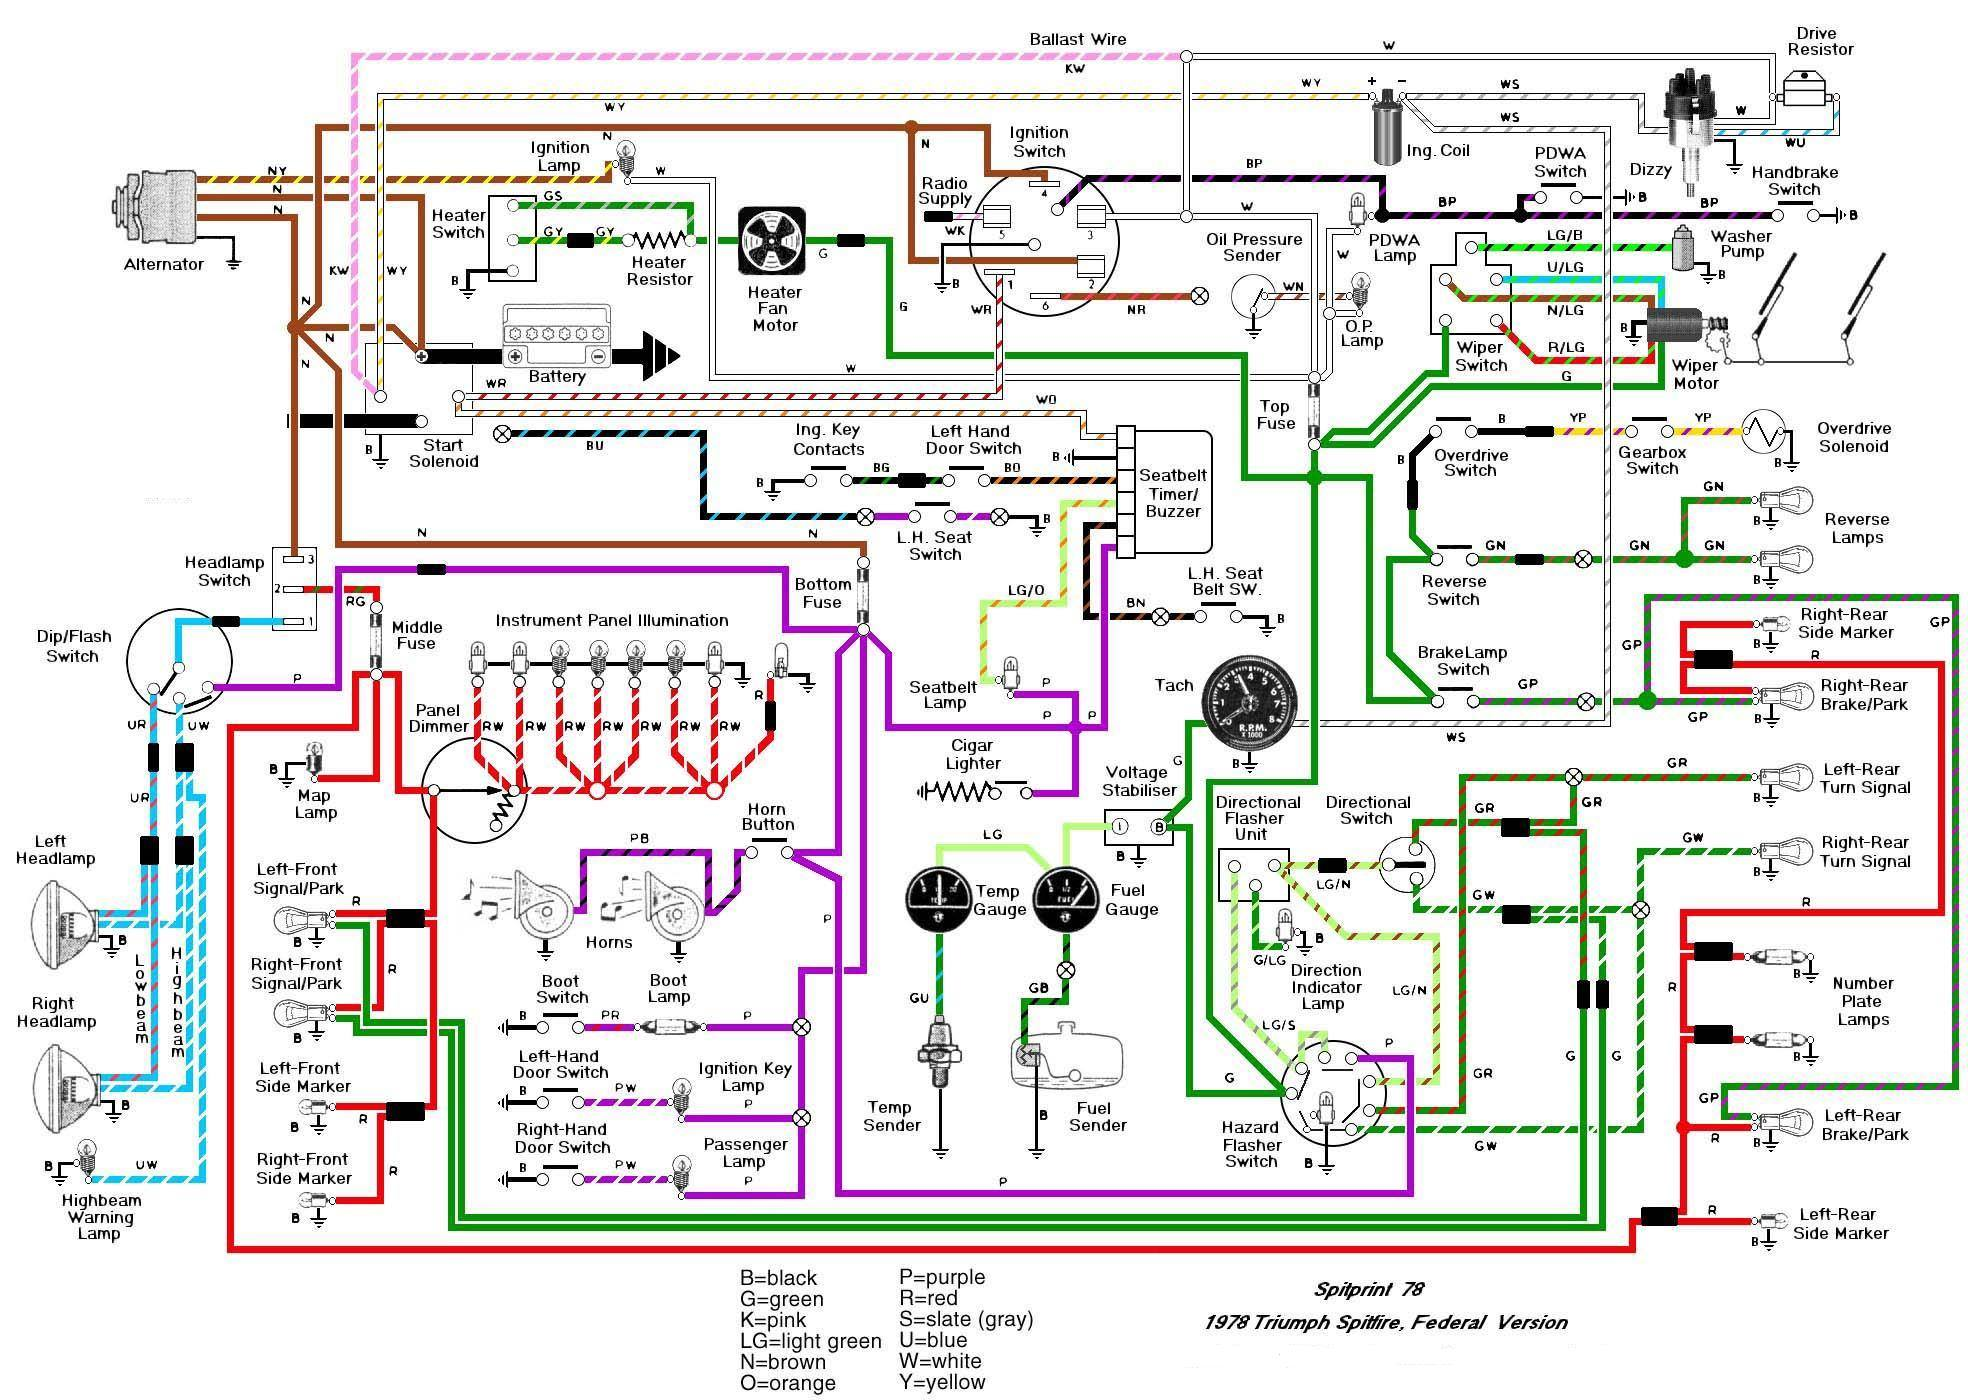 Honda Mt Elsinore K Usa Wire Harness Bighu F Ce D additionally Ts Schaltplan likewise Starter Relay further Be E A B A F B E further . on 1977 mgb wiring harness diagram